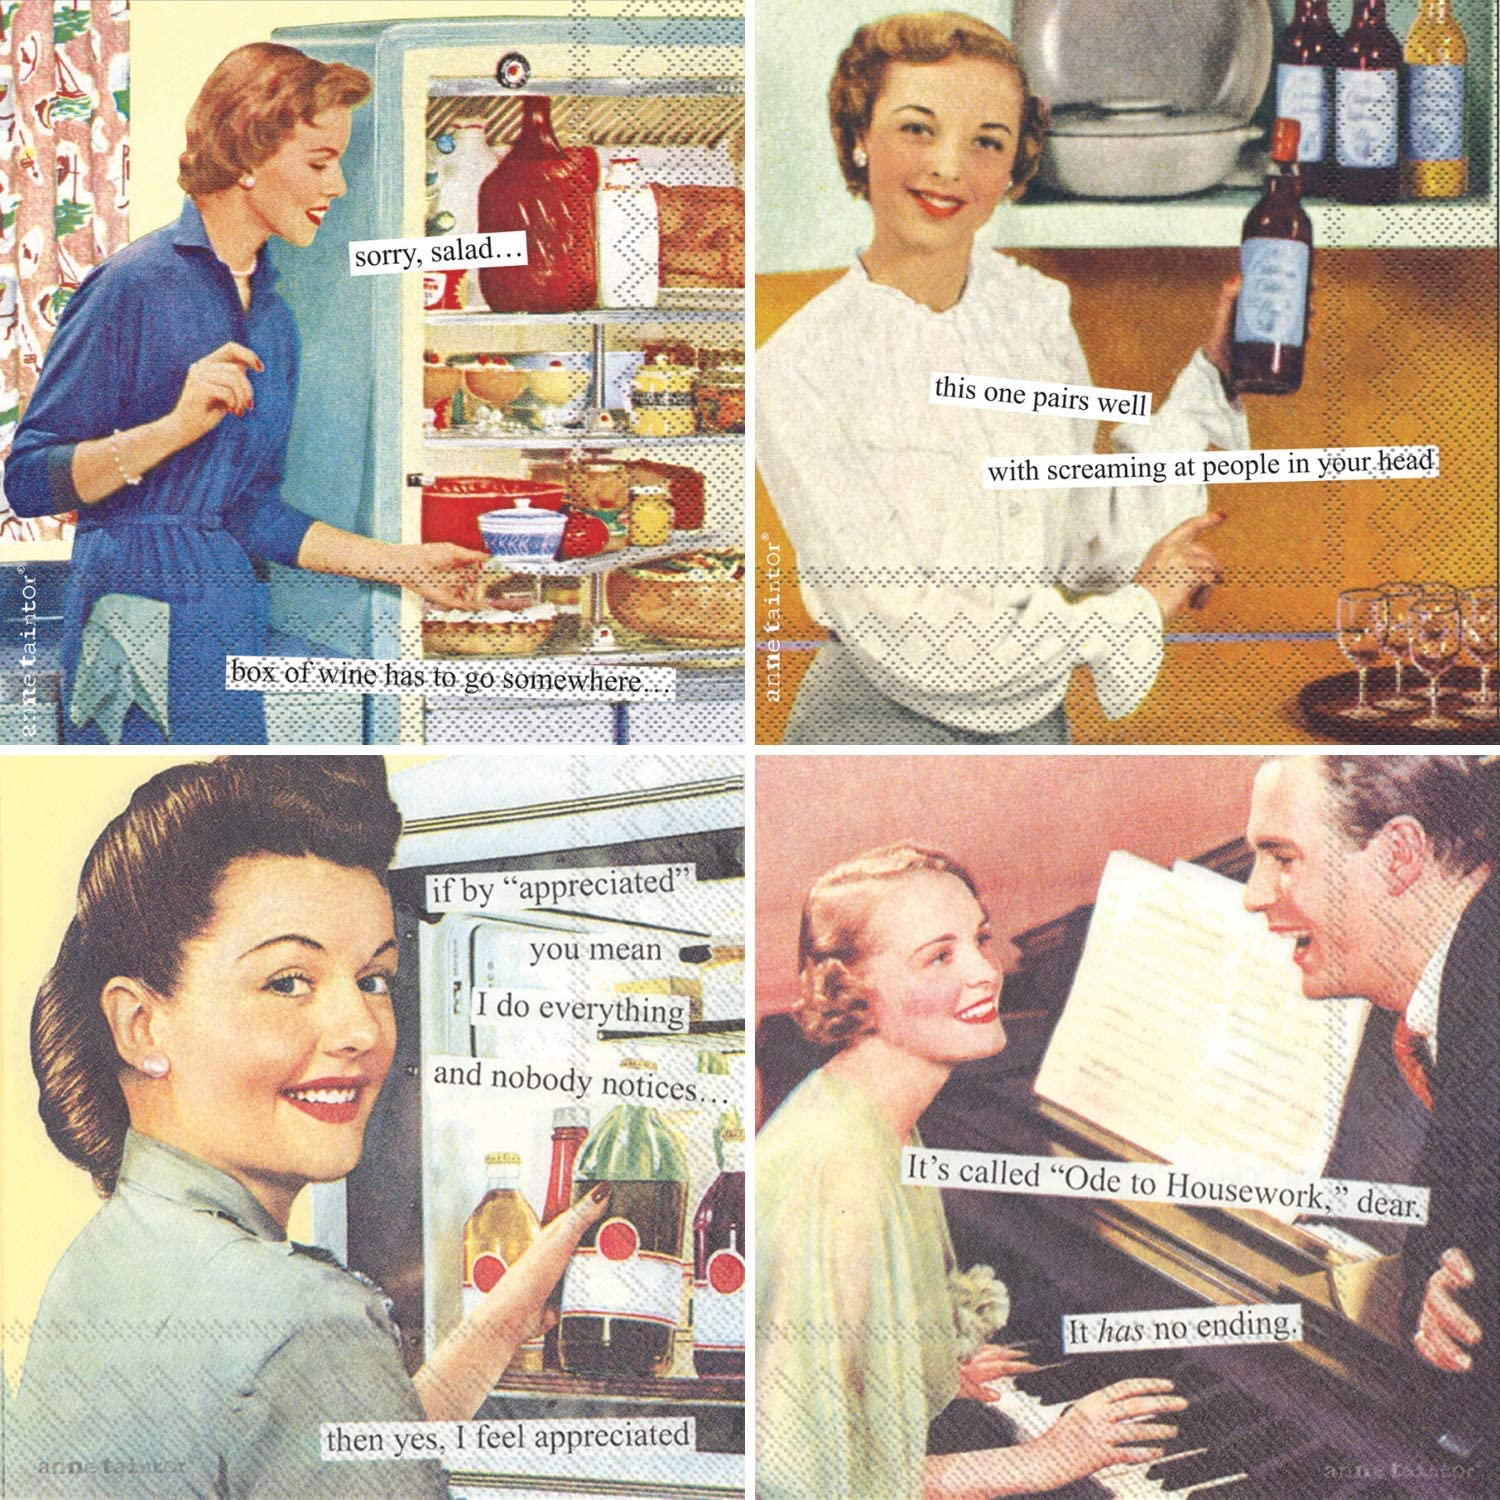 Humorous Cocktail Napkins for Women - Anne Taintor Funny Assorted Gift Boxed Variety Pack 40 Total